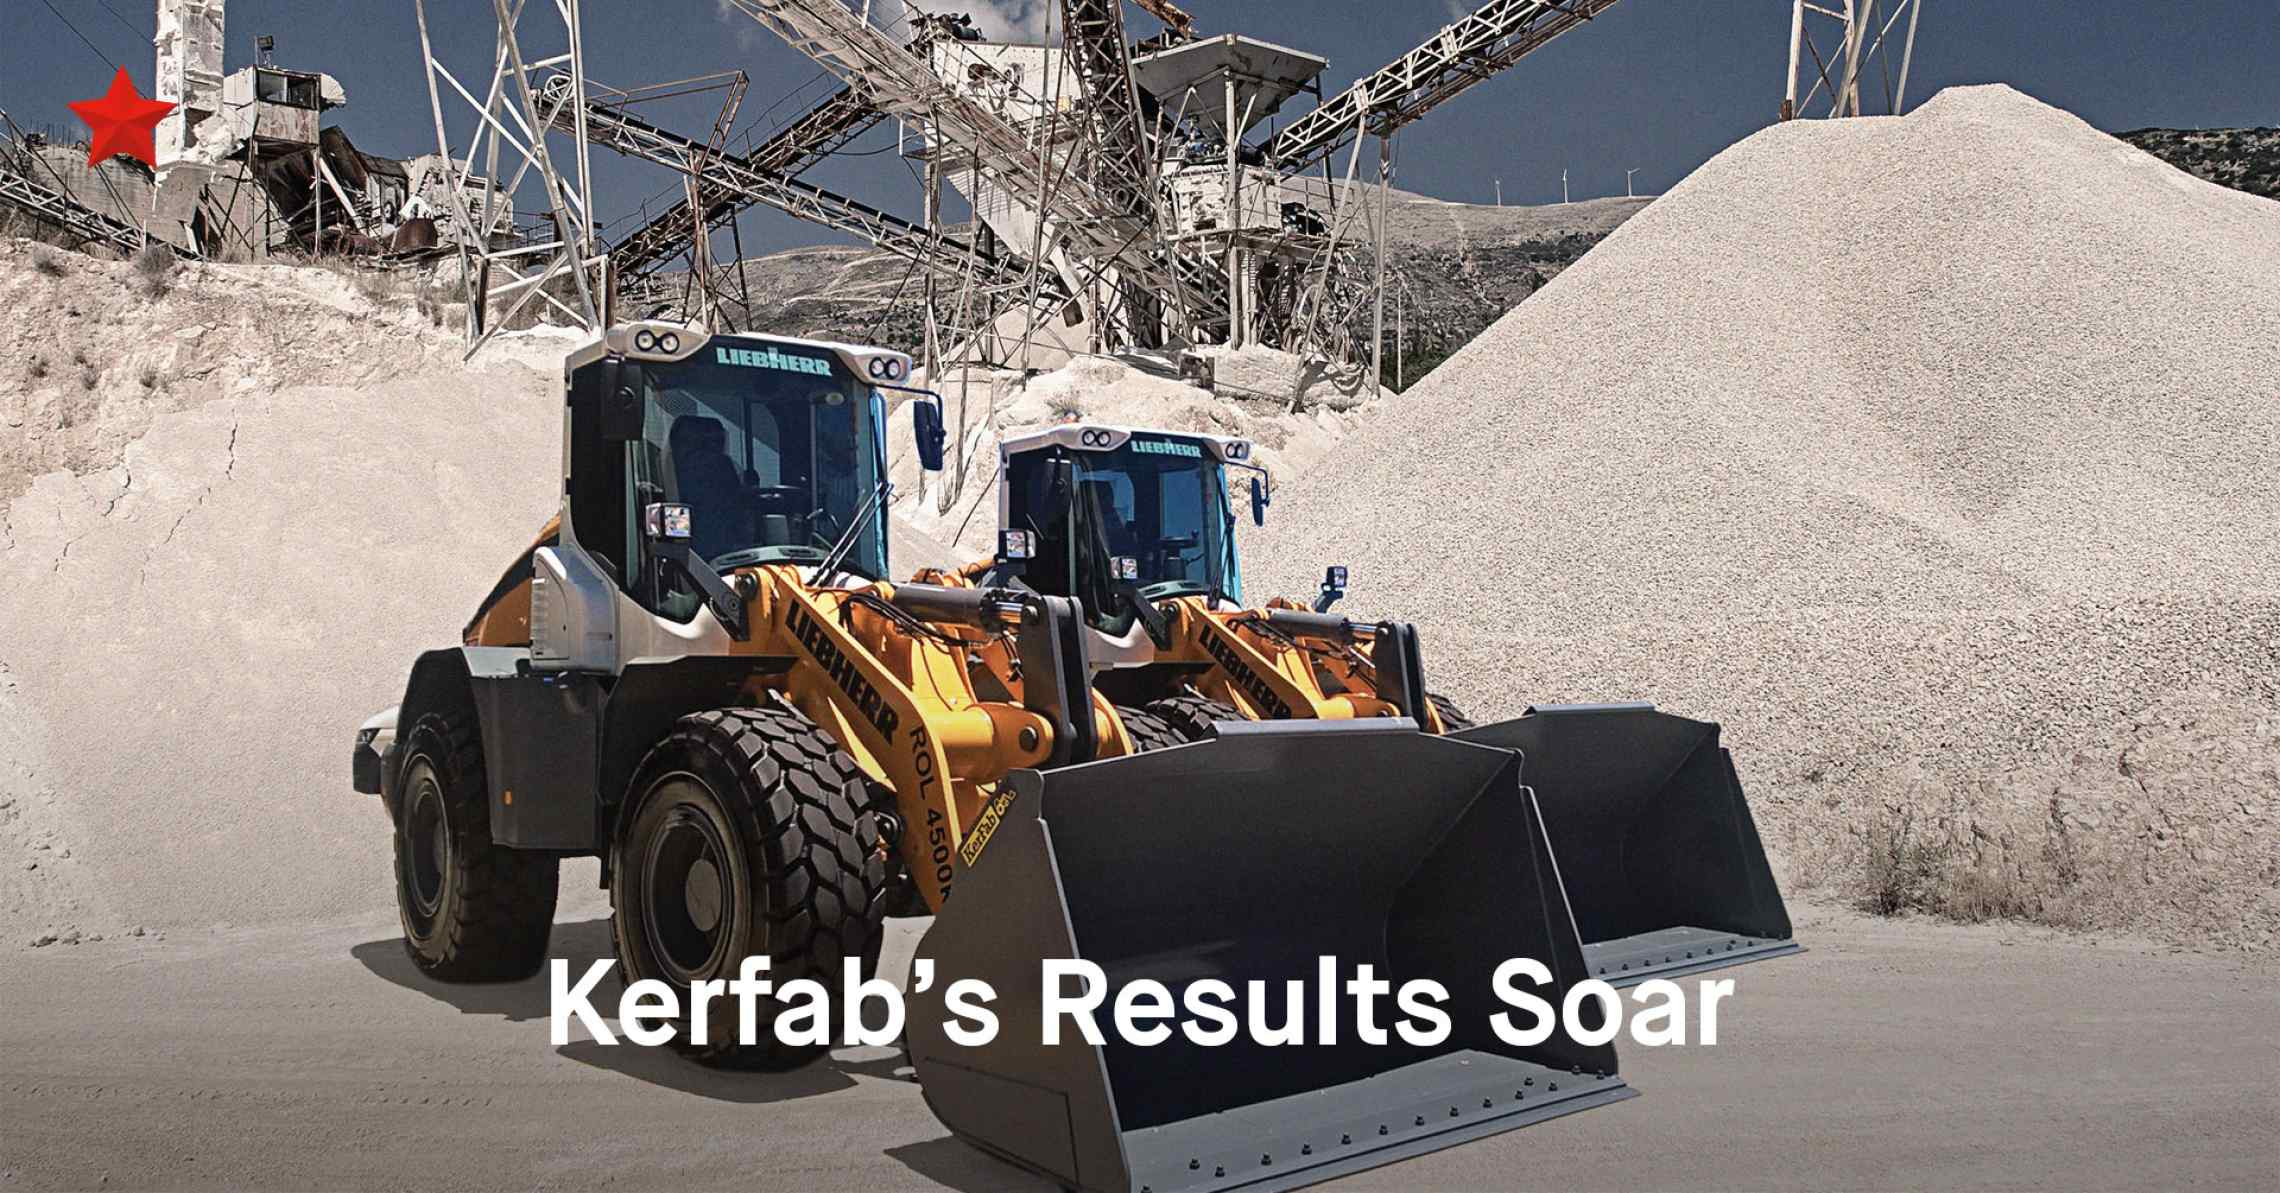 Kerfab's Results Soar Thanks to Integrated Inbound Marketing Campaign